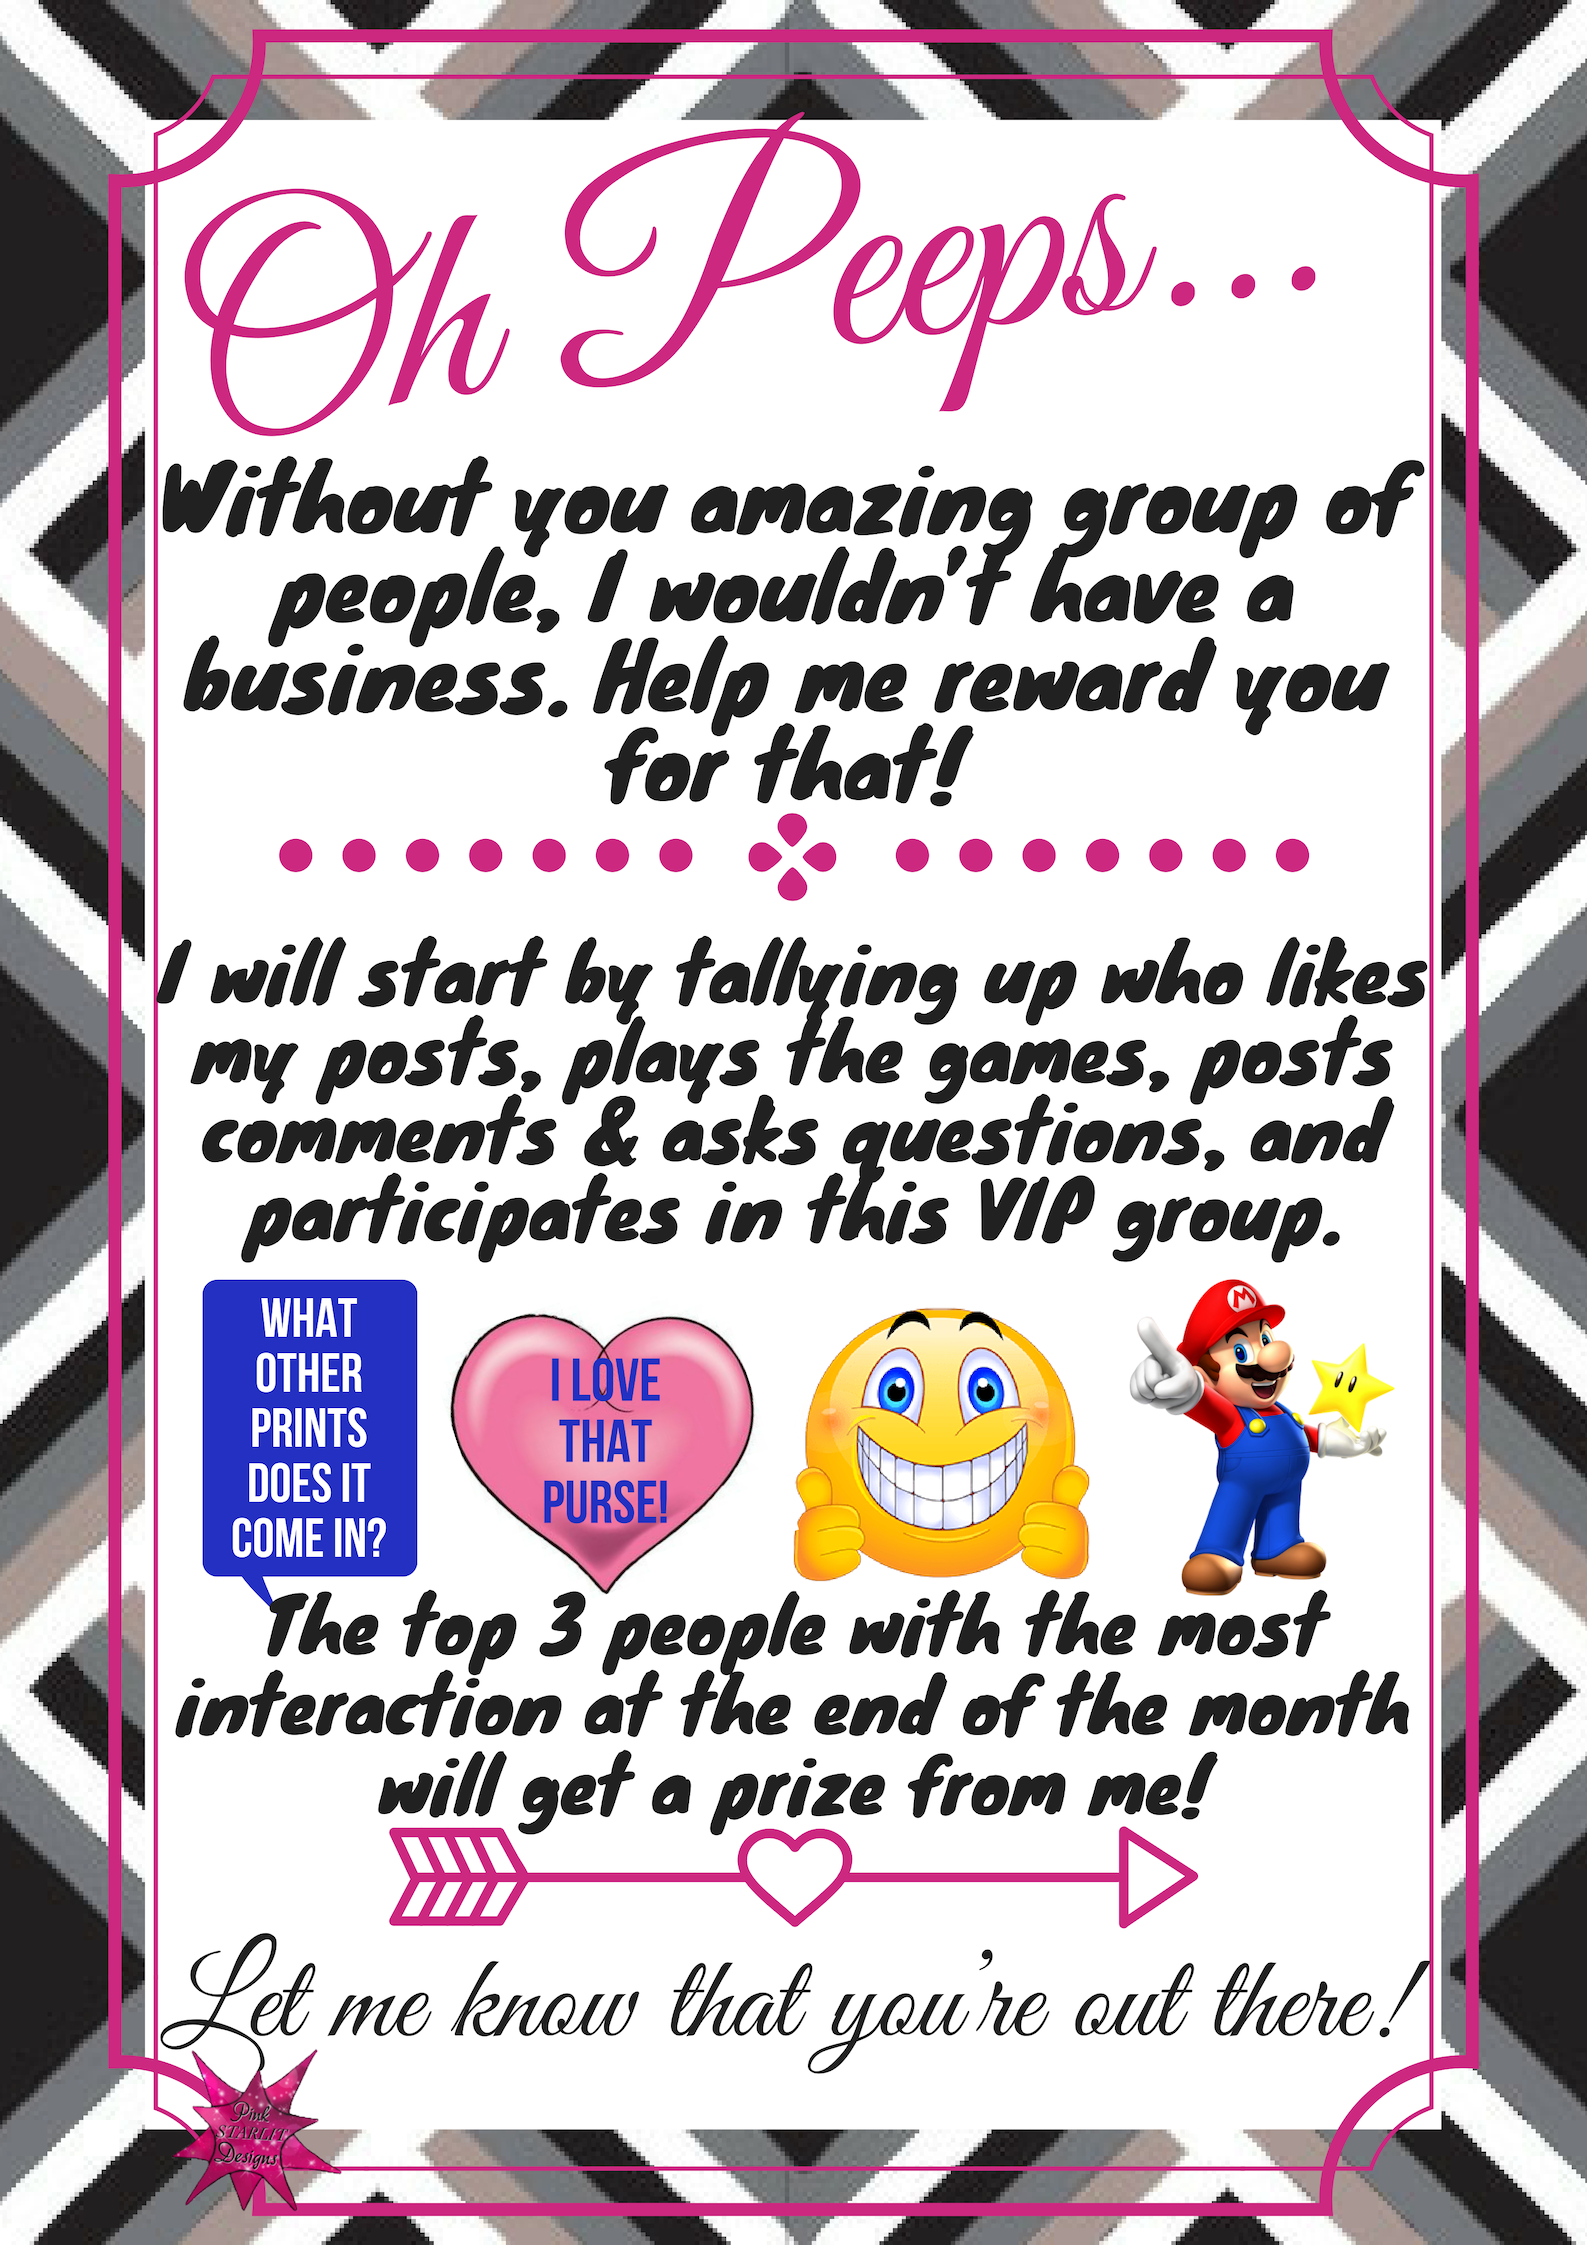 Top participants interaction graphic for Facebook VIP group